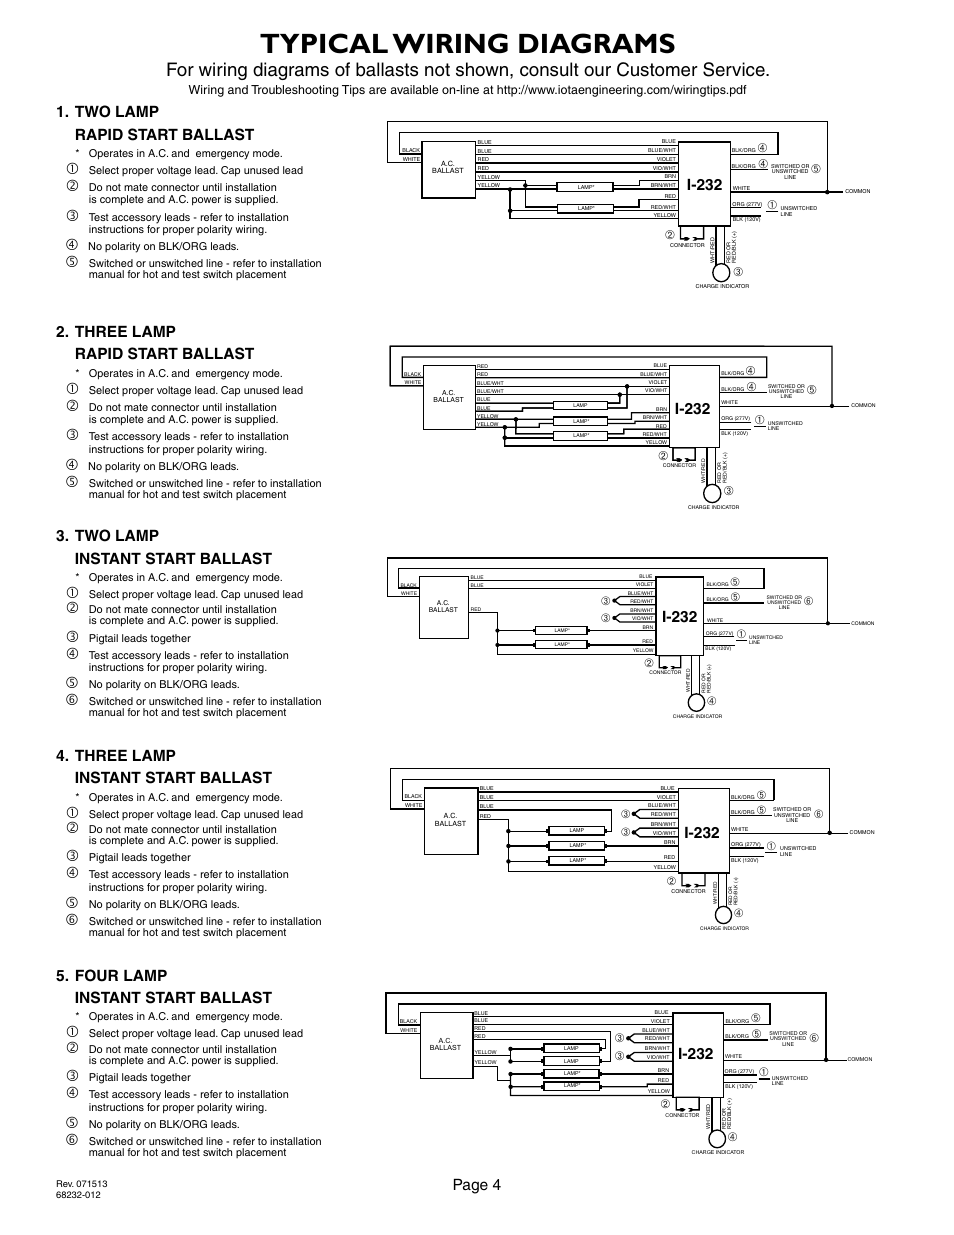 iota i 232 page4 ballast diagram wiring light ballast wiring diagram \u2022 wiring ballast switch wiring diagram at alyssarenee.co